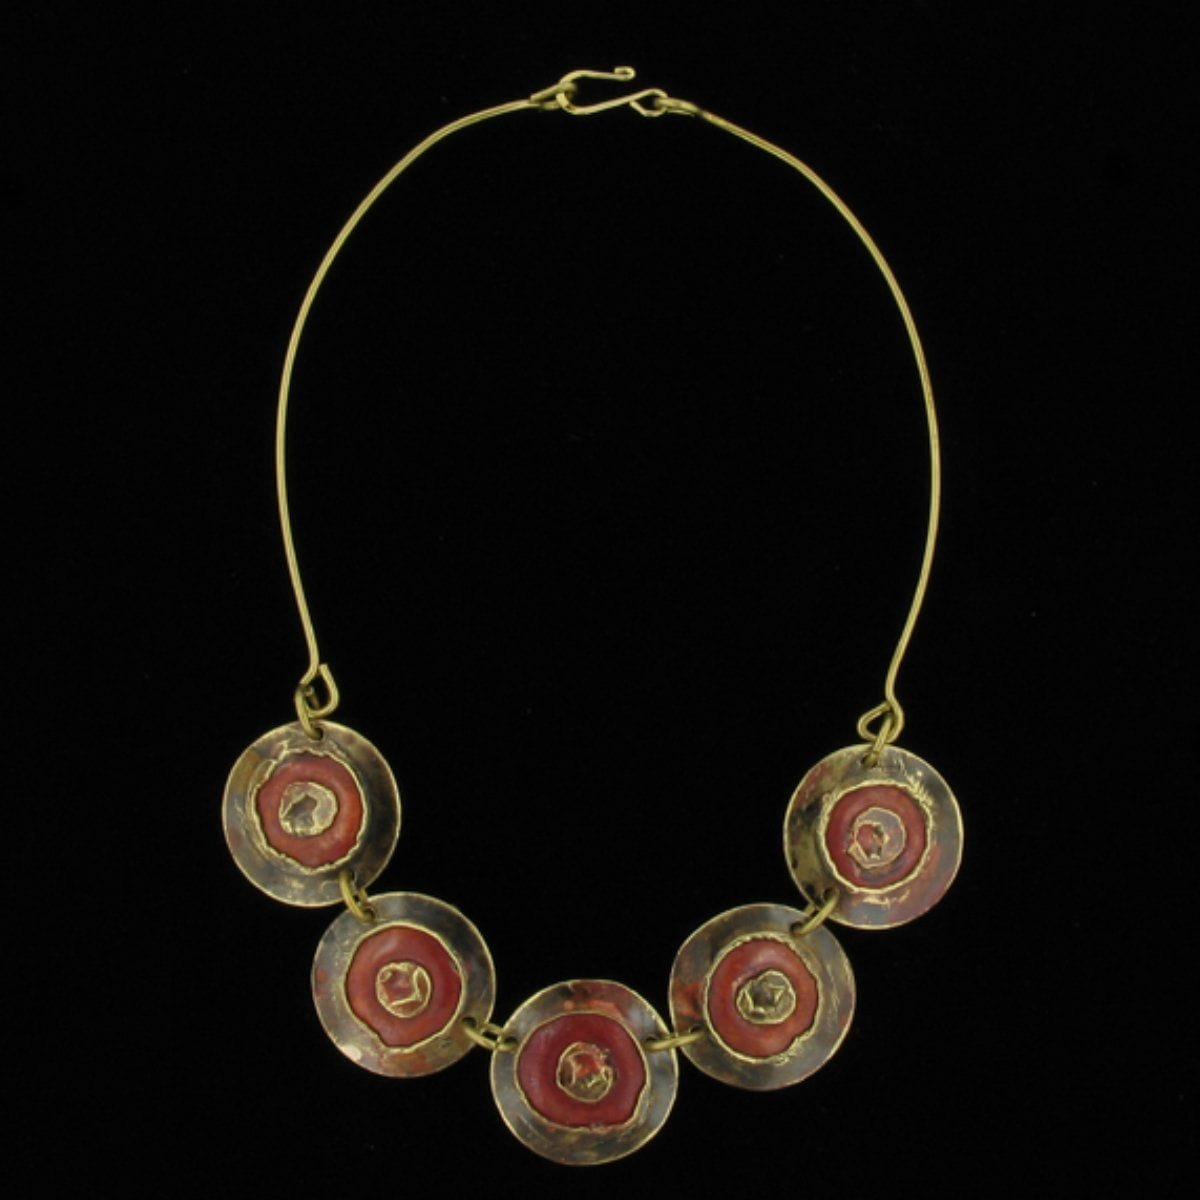 C017 Necklace-Creative Copper-Renee Taylor Gallery